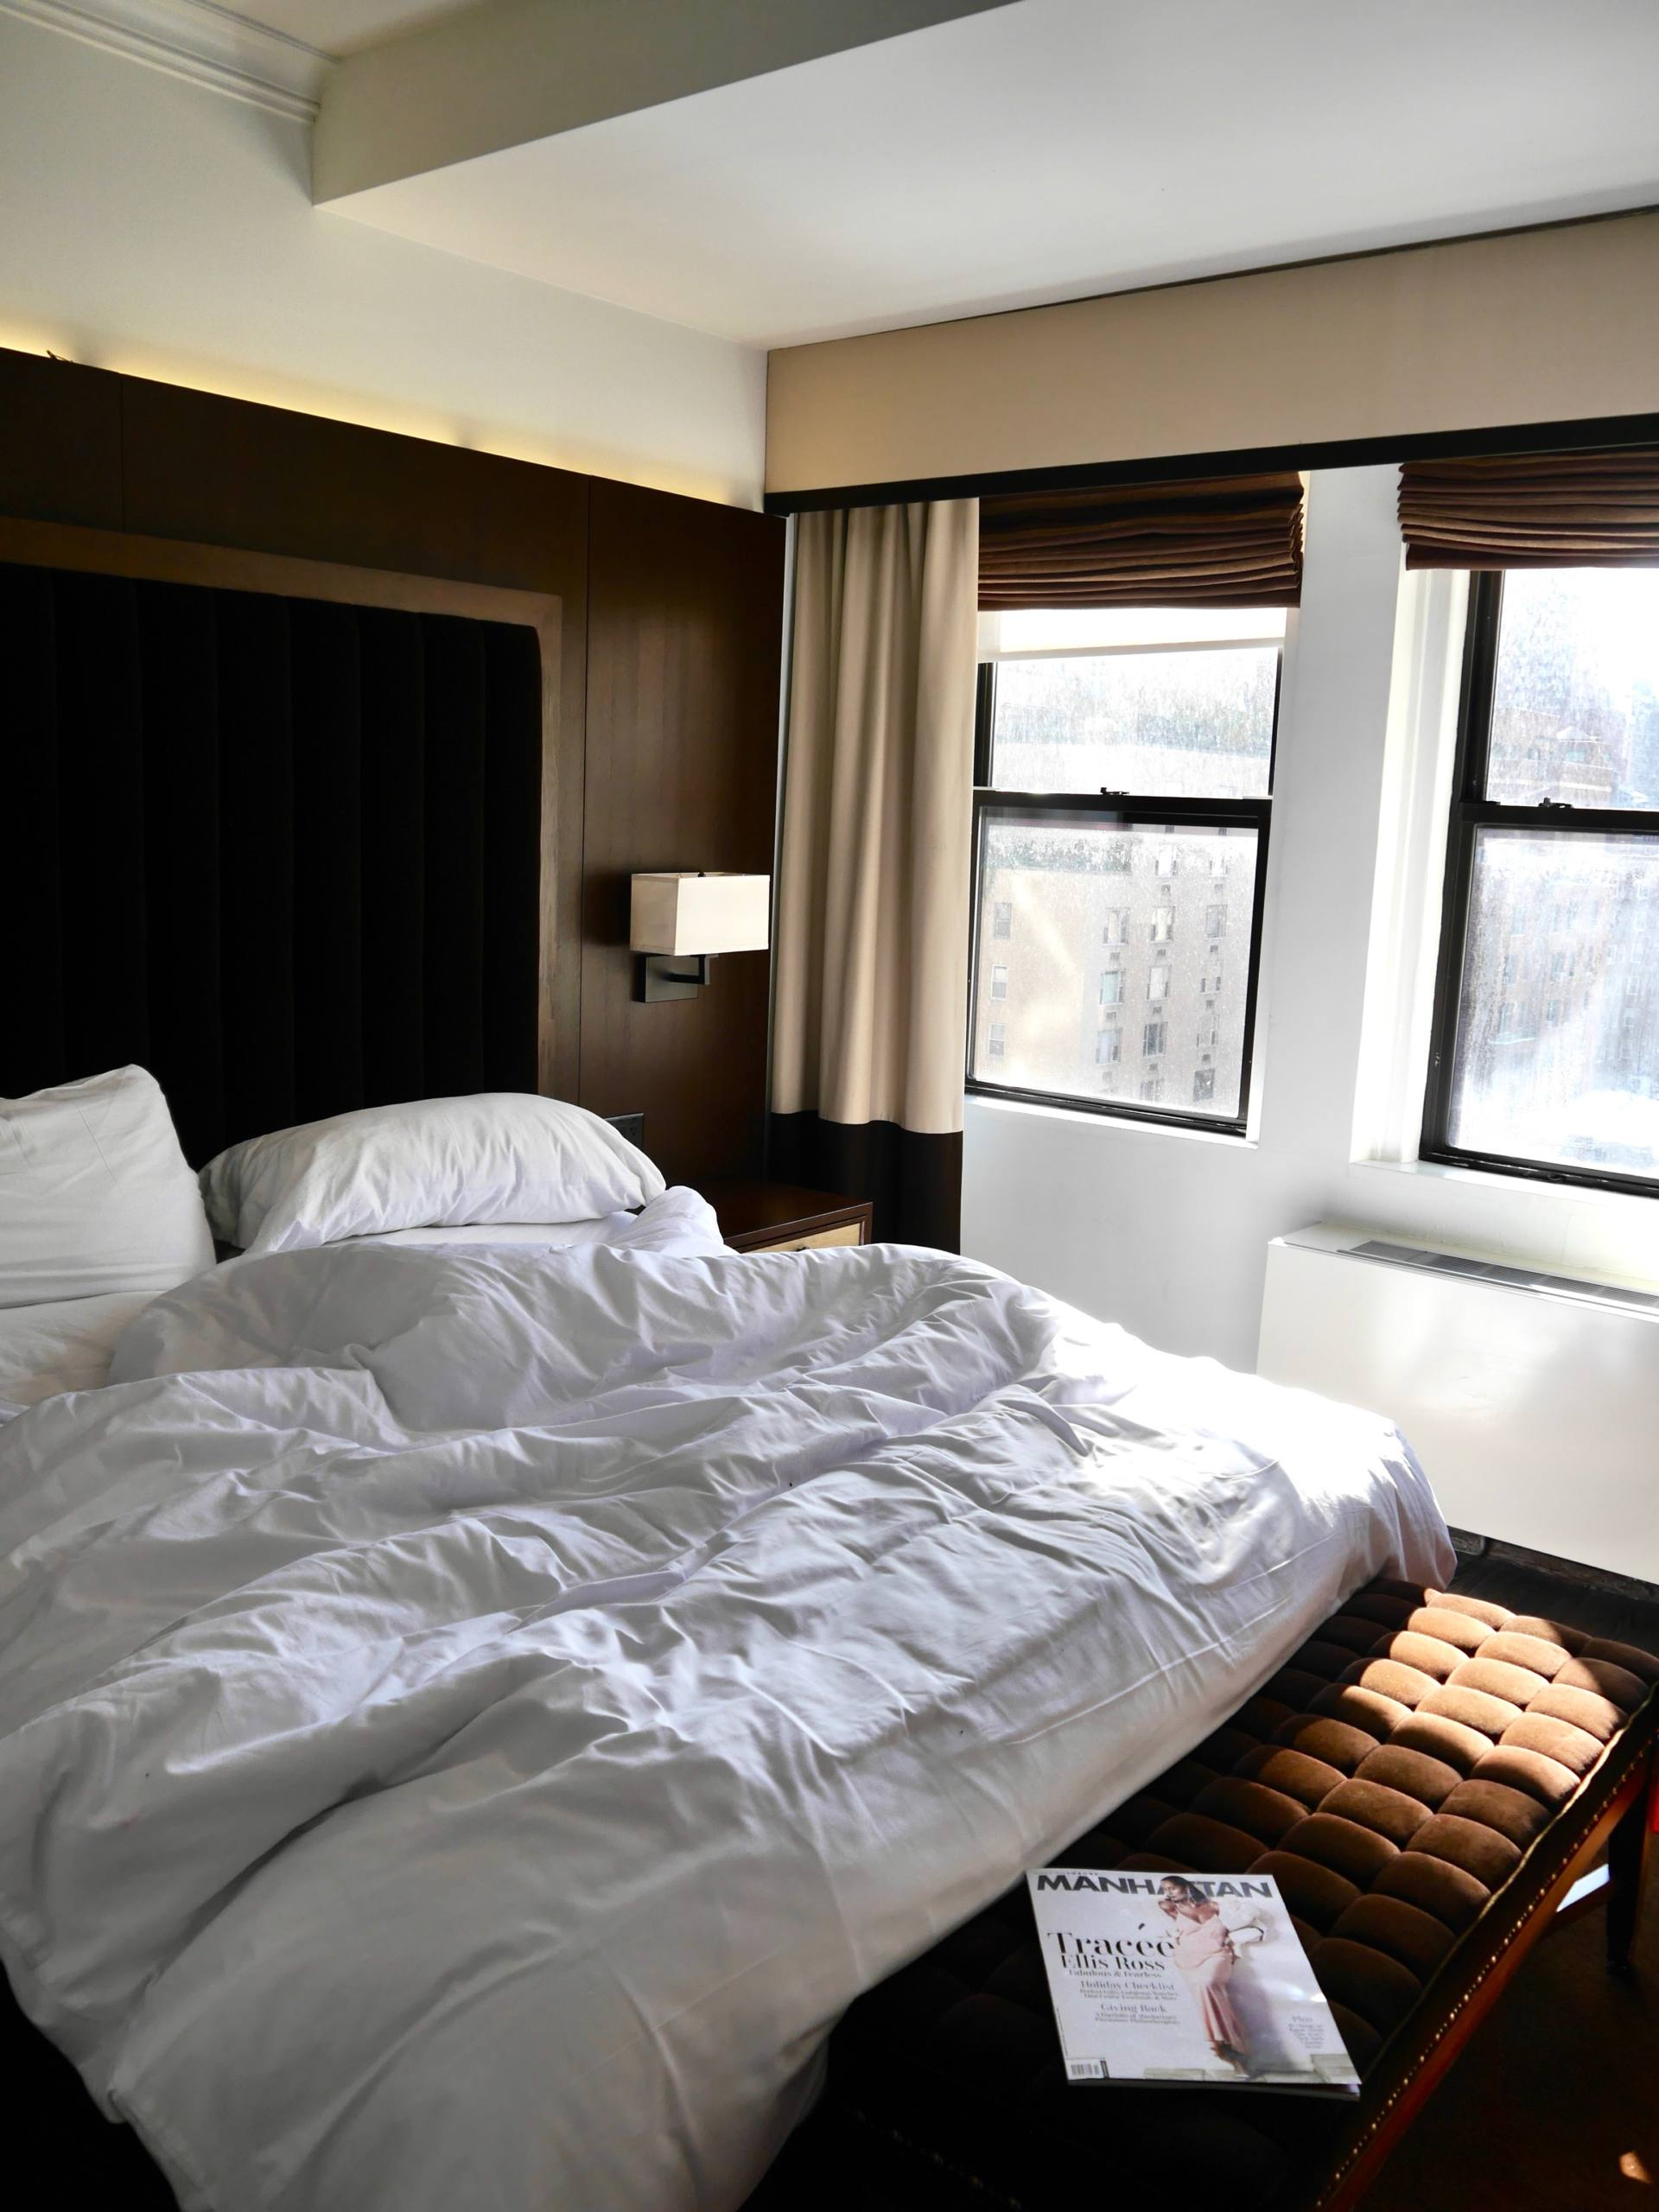 Buy New York Hotel Promo Online Coupons 10 Off